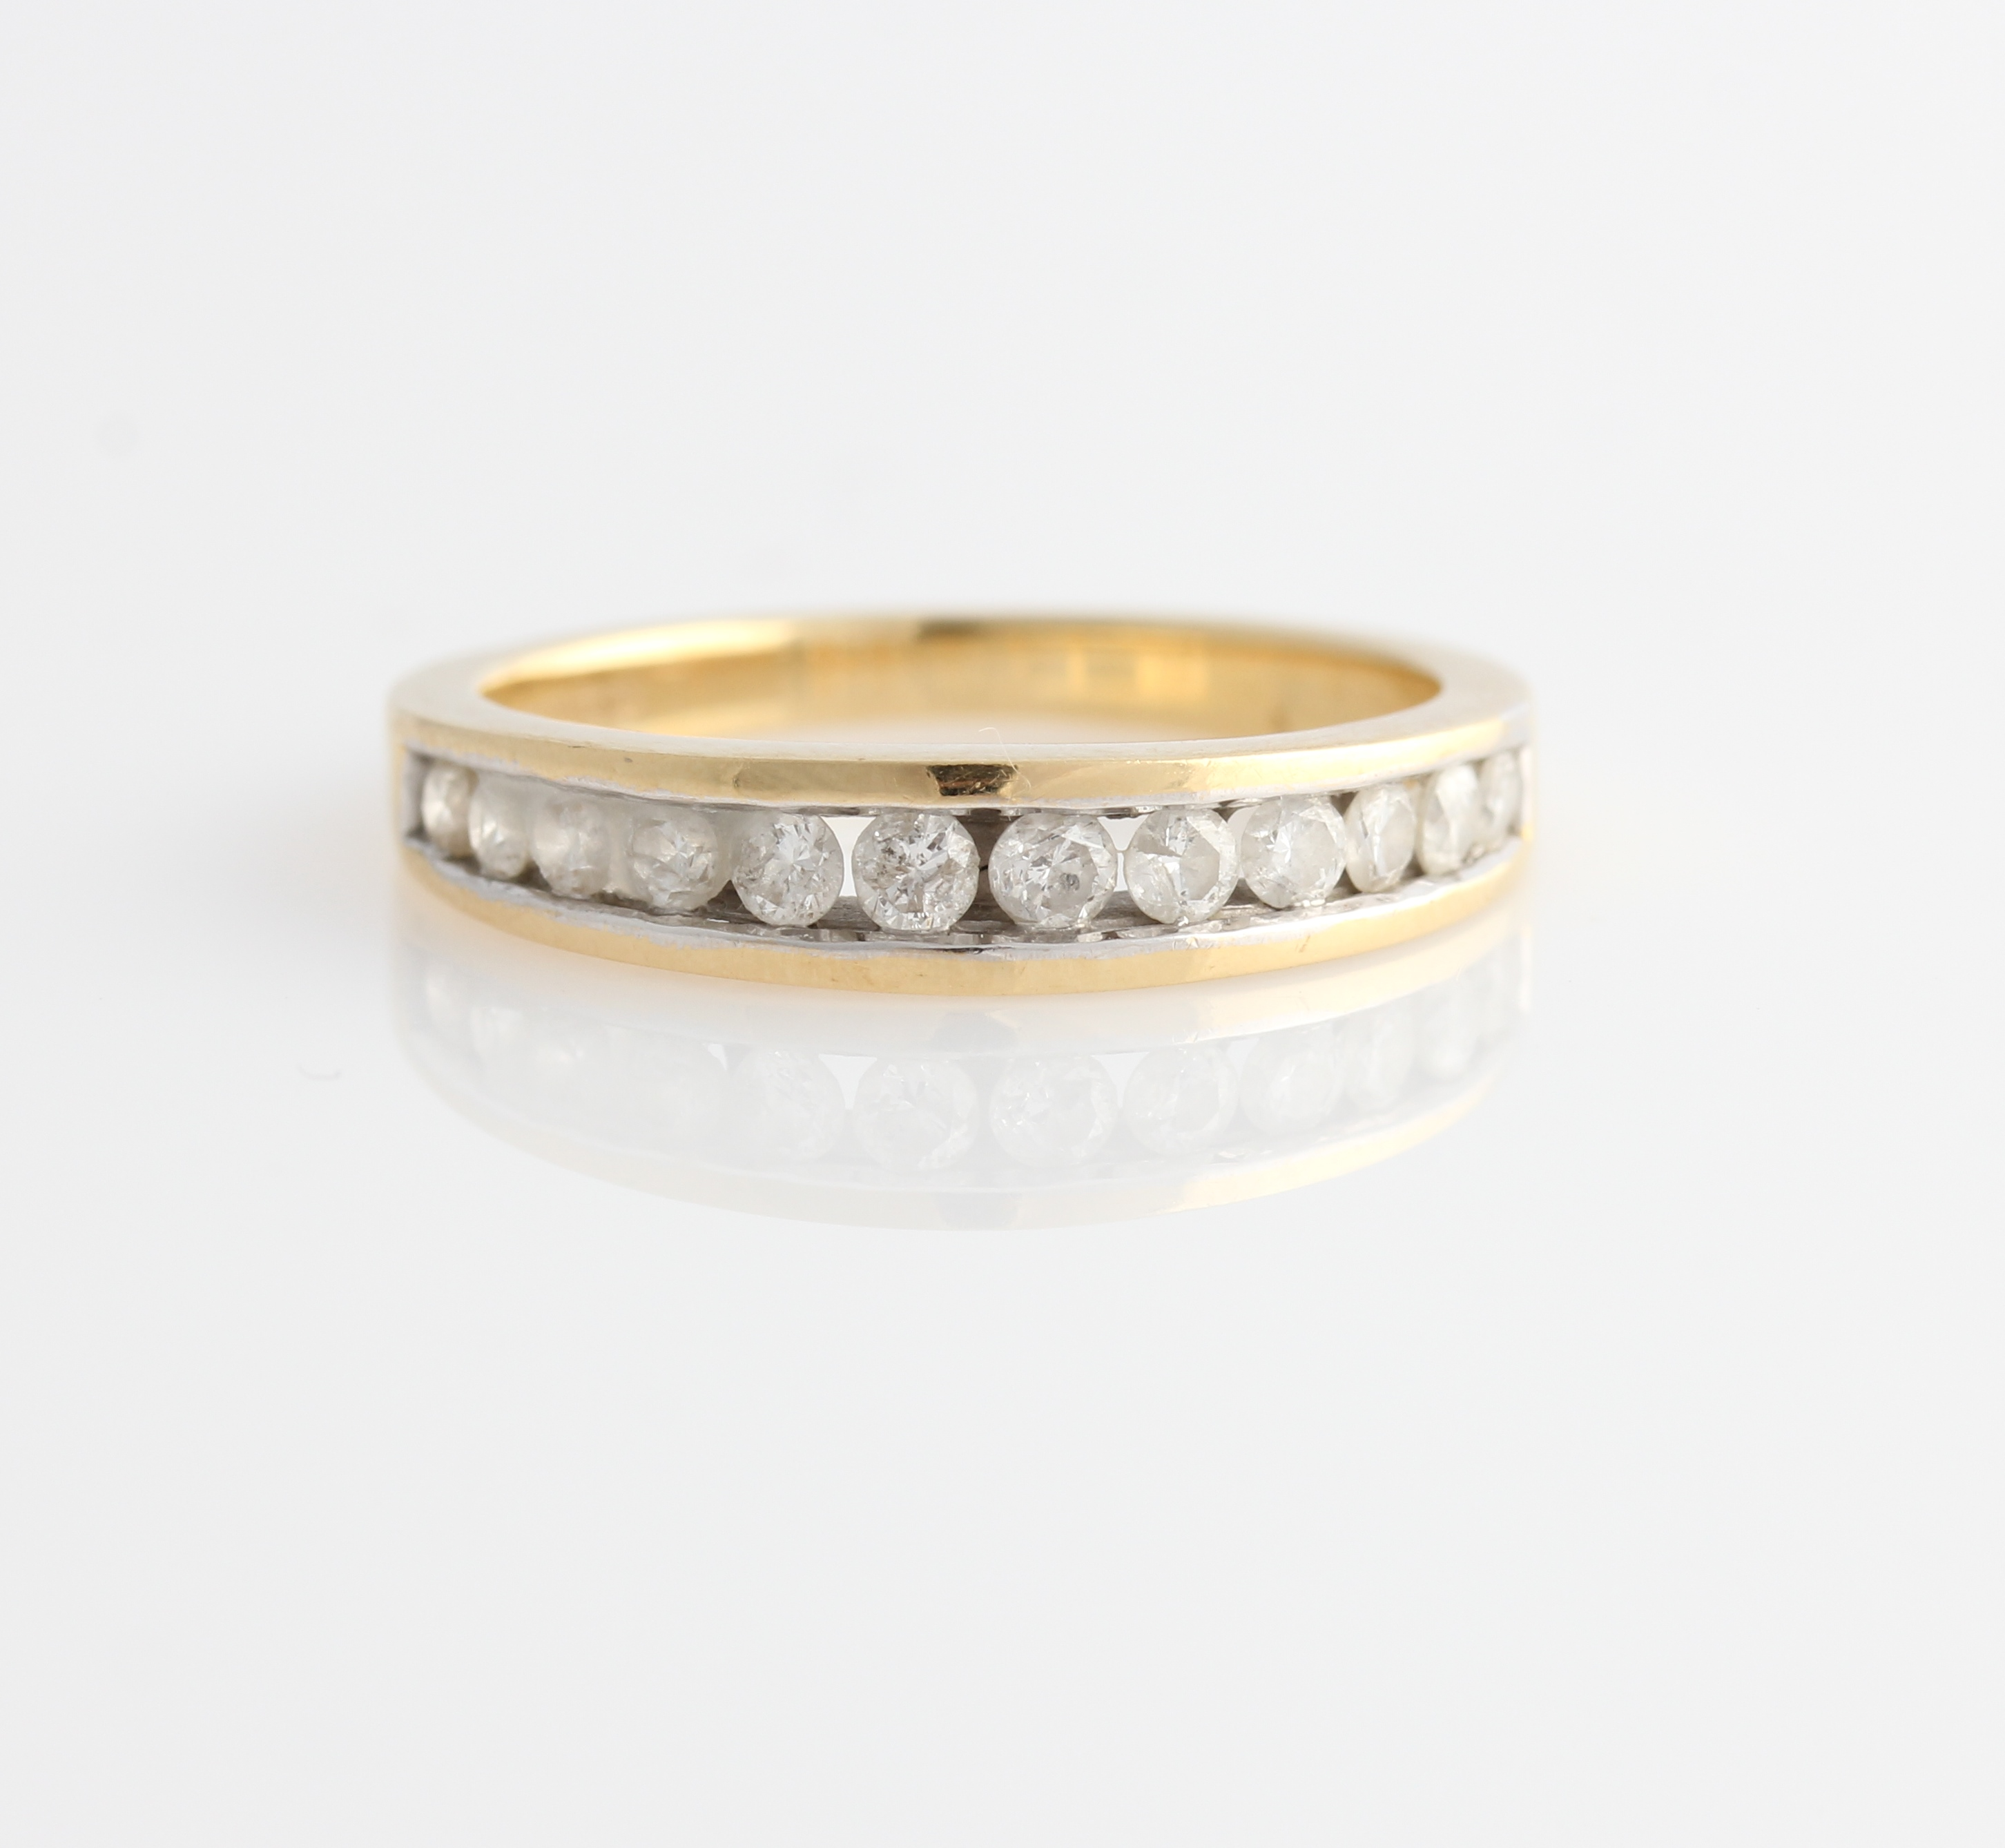 Lot 49 - A hallmarked 18ct yellow gold diamond half eternity ring, channel set with twelve graduated round